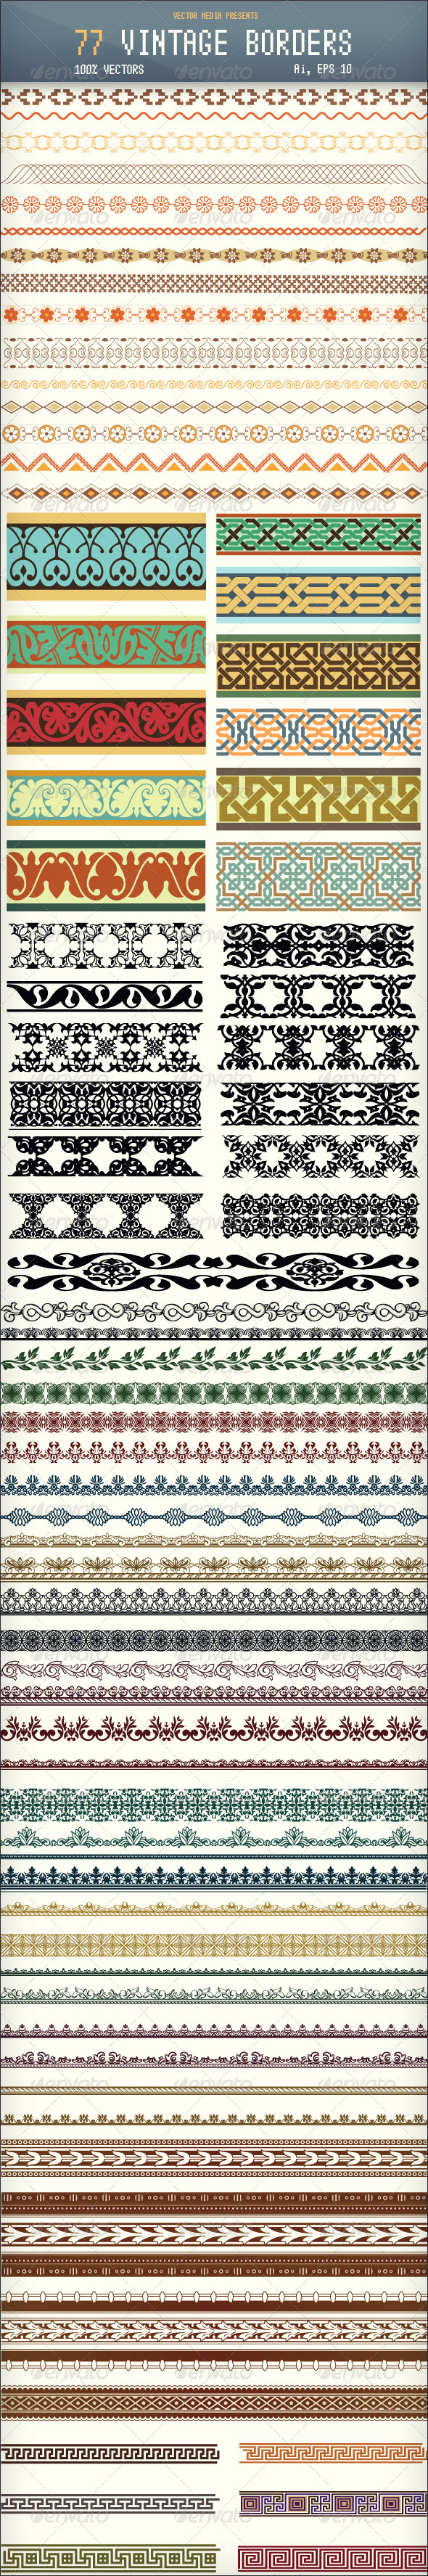 77 Vintage Borders - Borders Decorative